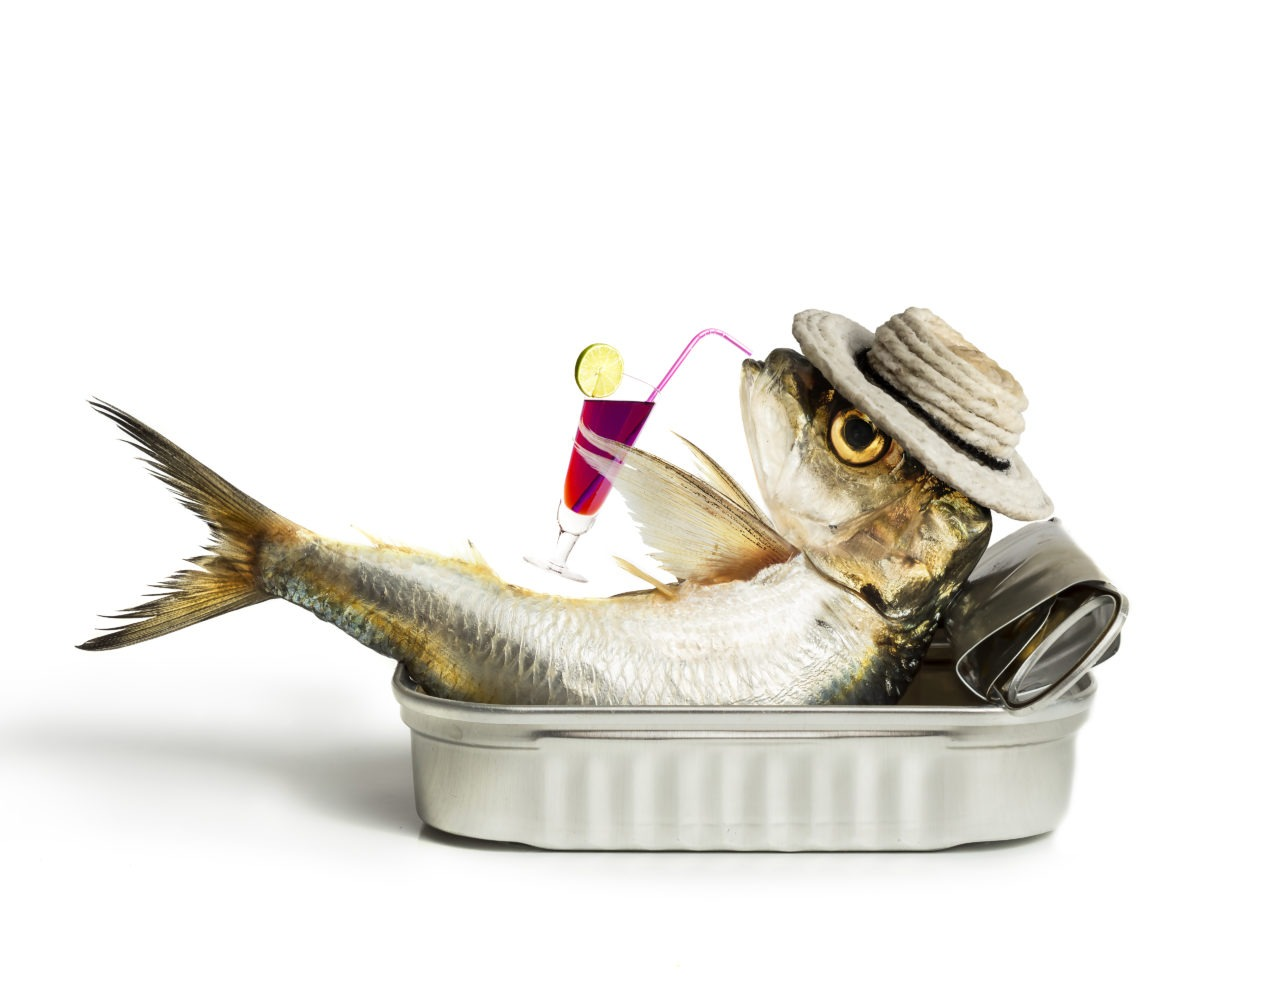 Is Fish Good For You?